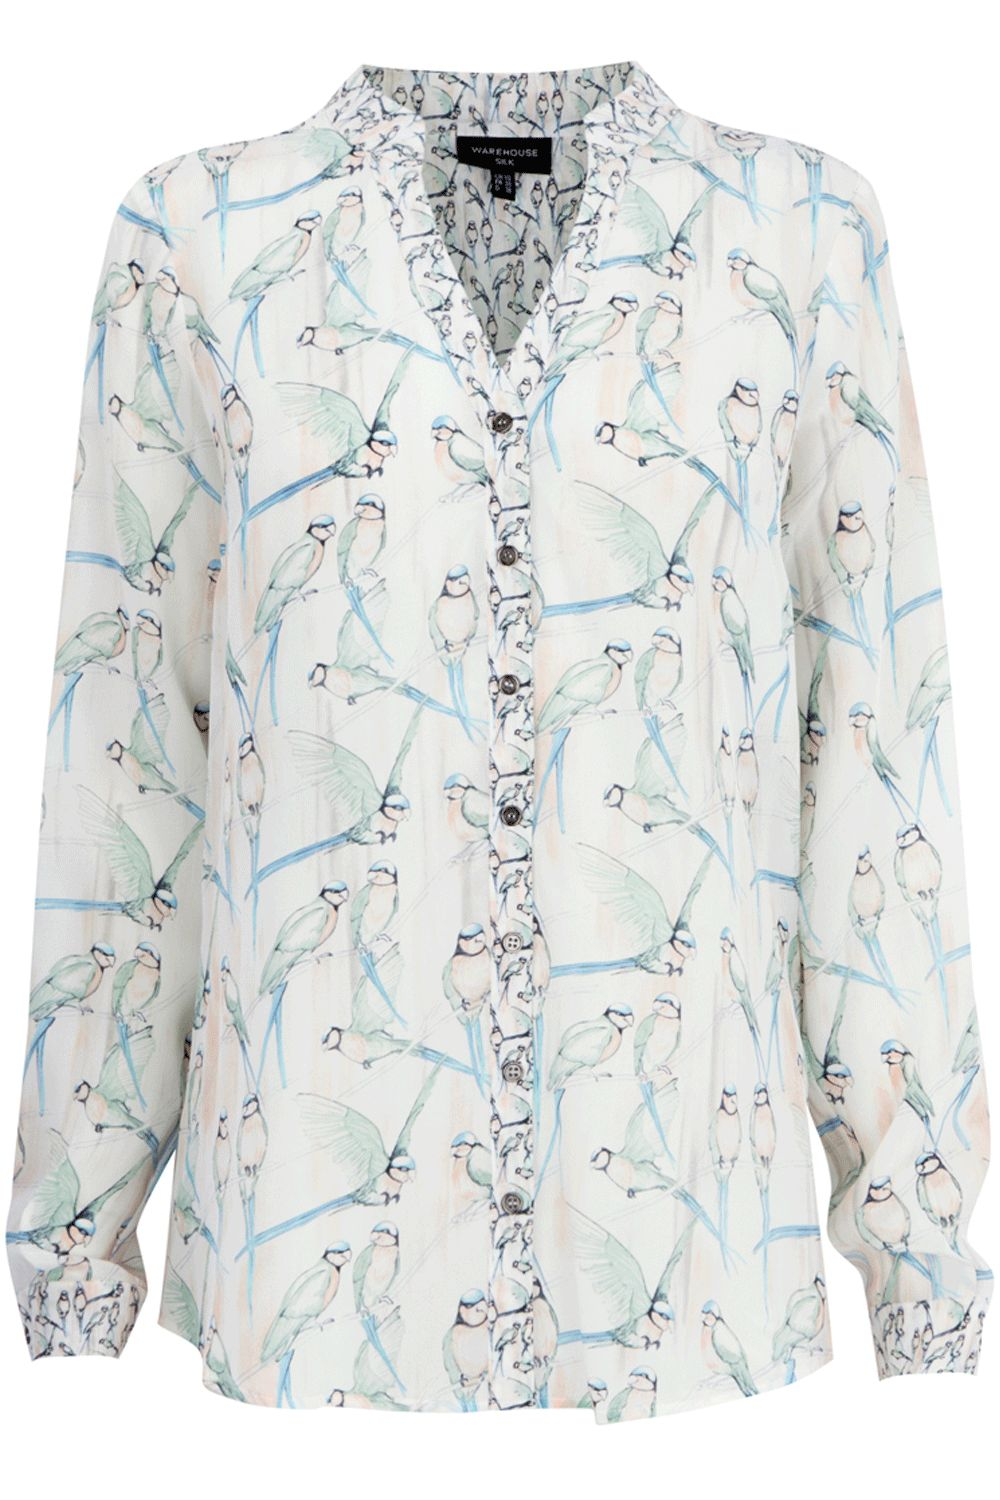 Warehouse Womens Warehouse Love birds print blouse, product image